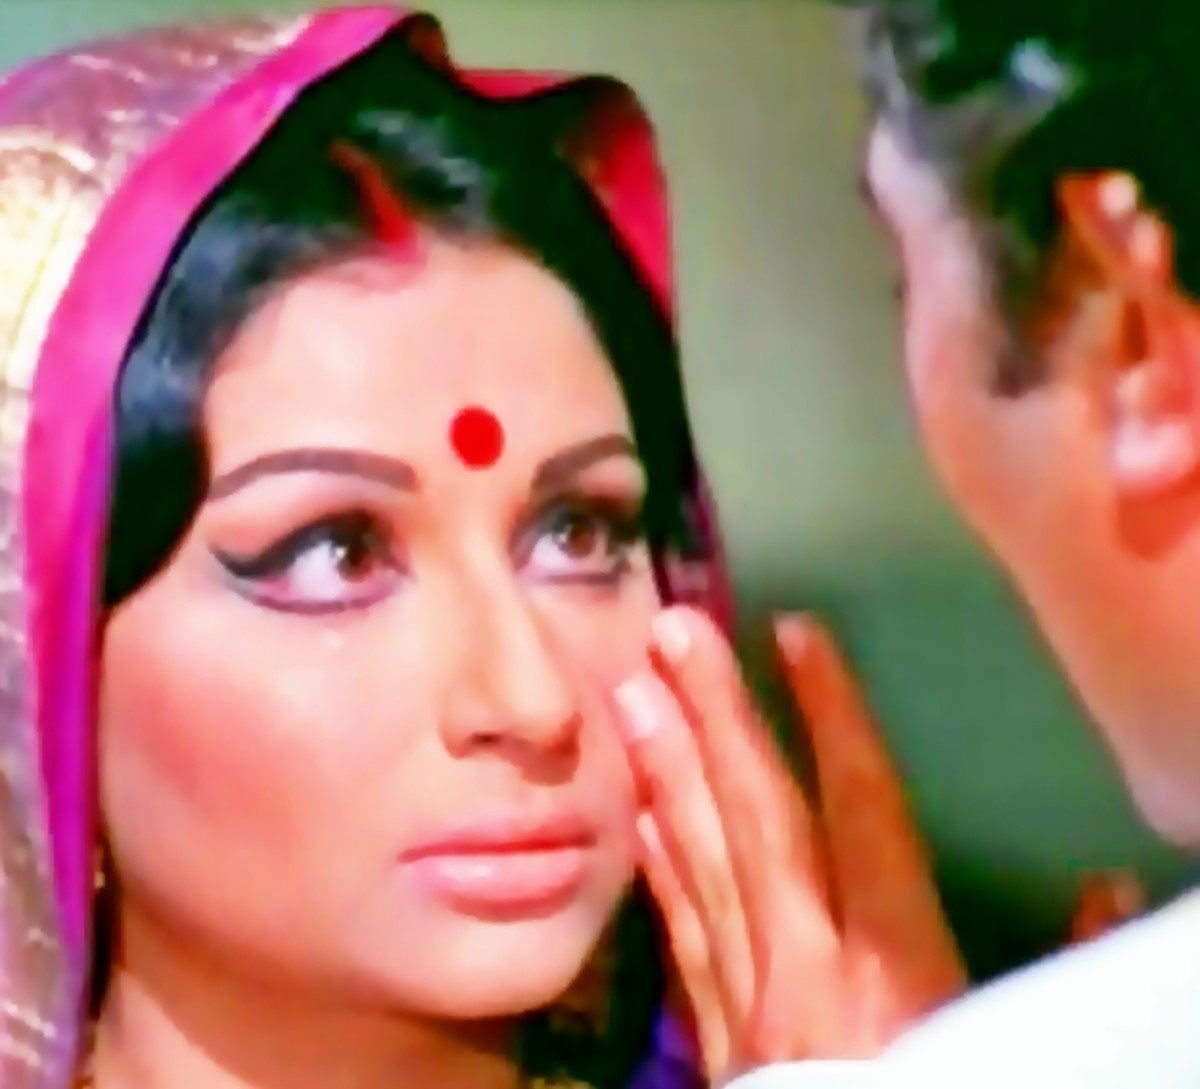 Sharmila Tagore & Rajesh Khanna in Kuchh to log kahenge ...: A great number enacted by one of the all time greatest on-screen pairs of Bollywood